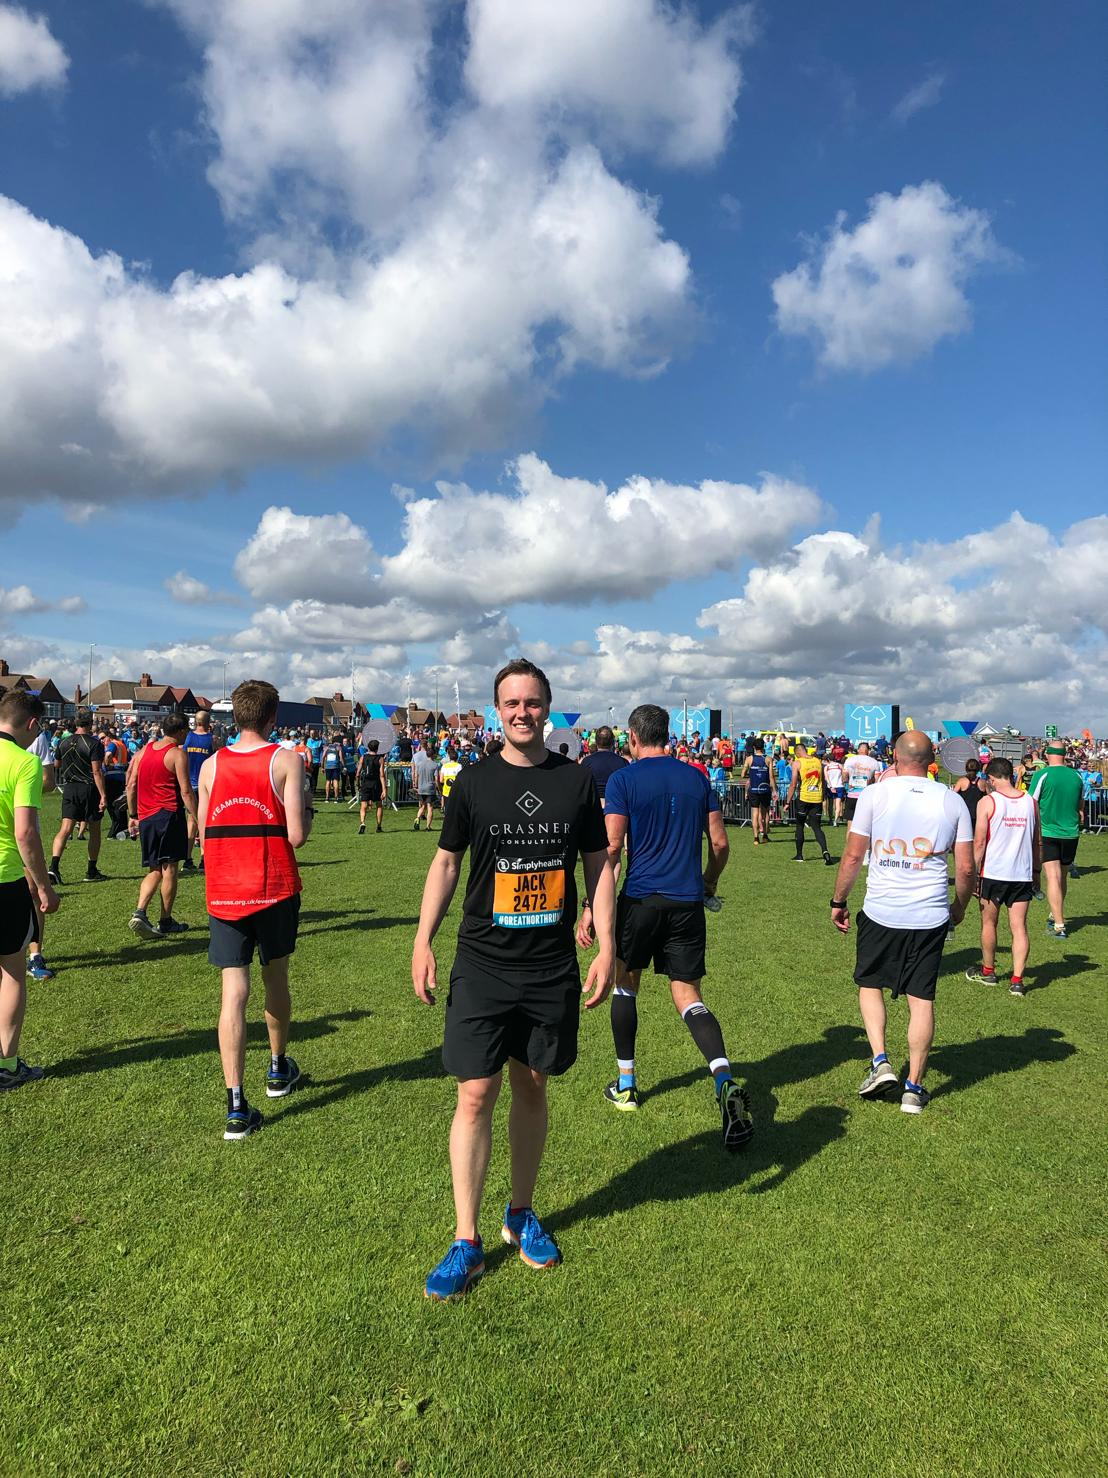 Crasner Consulting Completes the Great North Run for Cancer Research UK